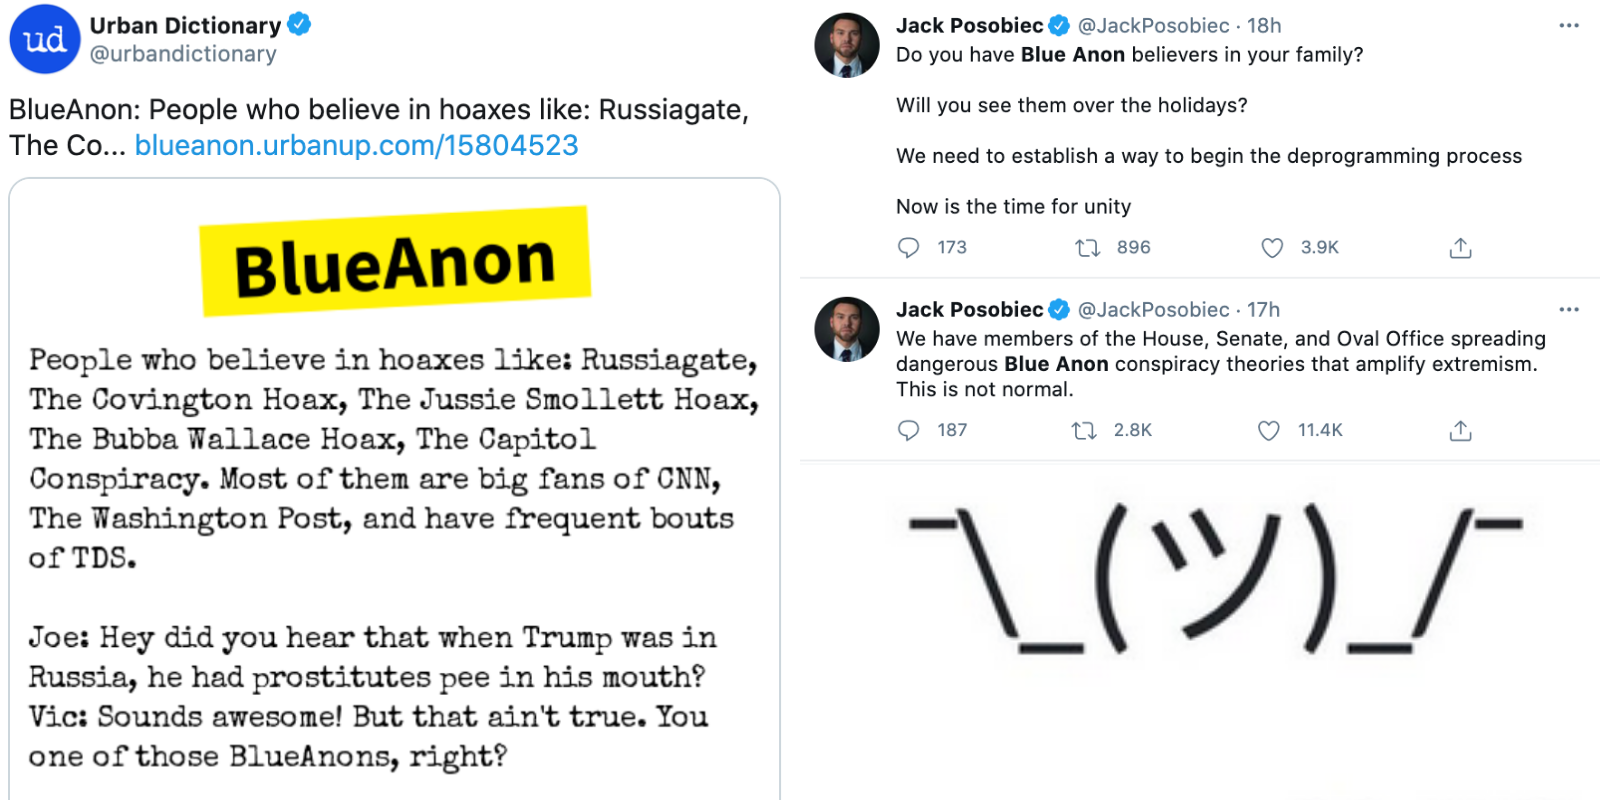 CULTURE WAR VICTORY: Urban Dictionary restores 'Blue Anon' entry after backlash to censorship